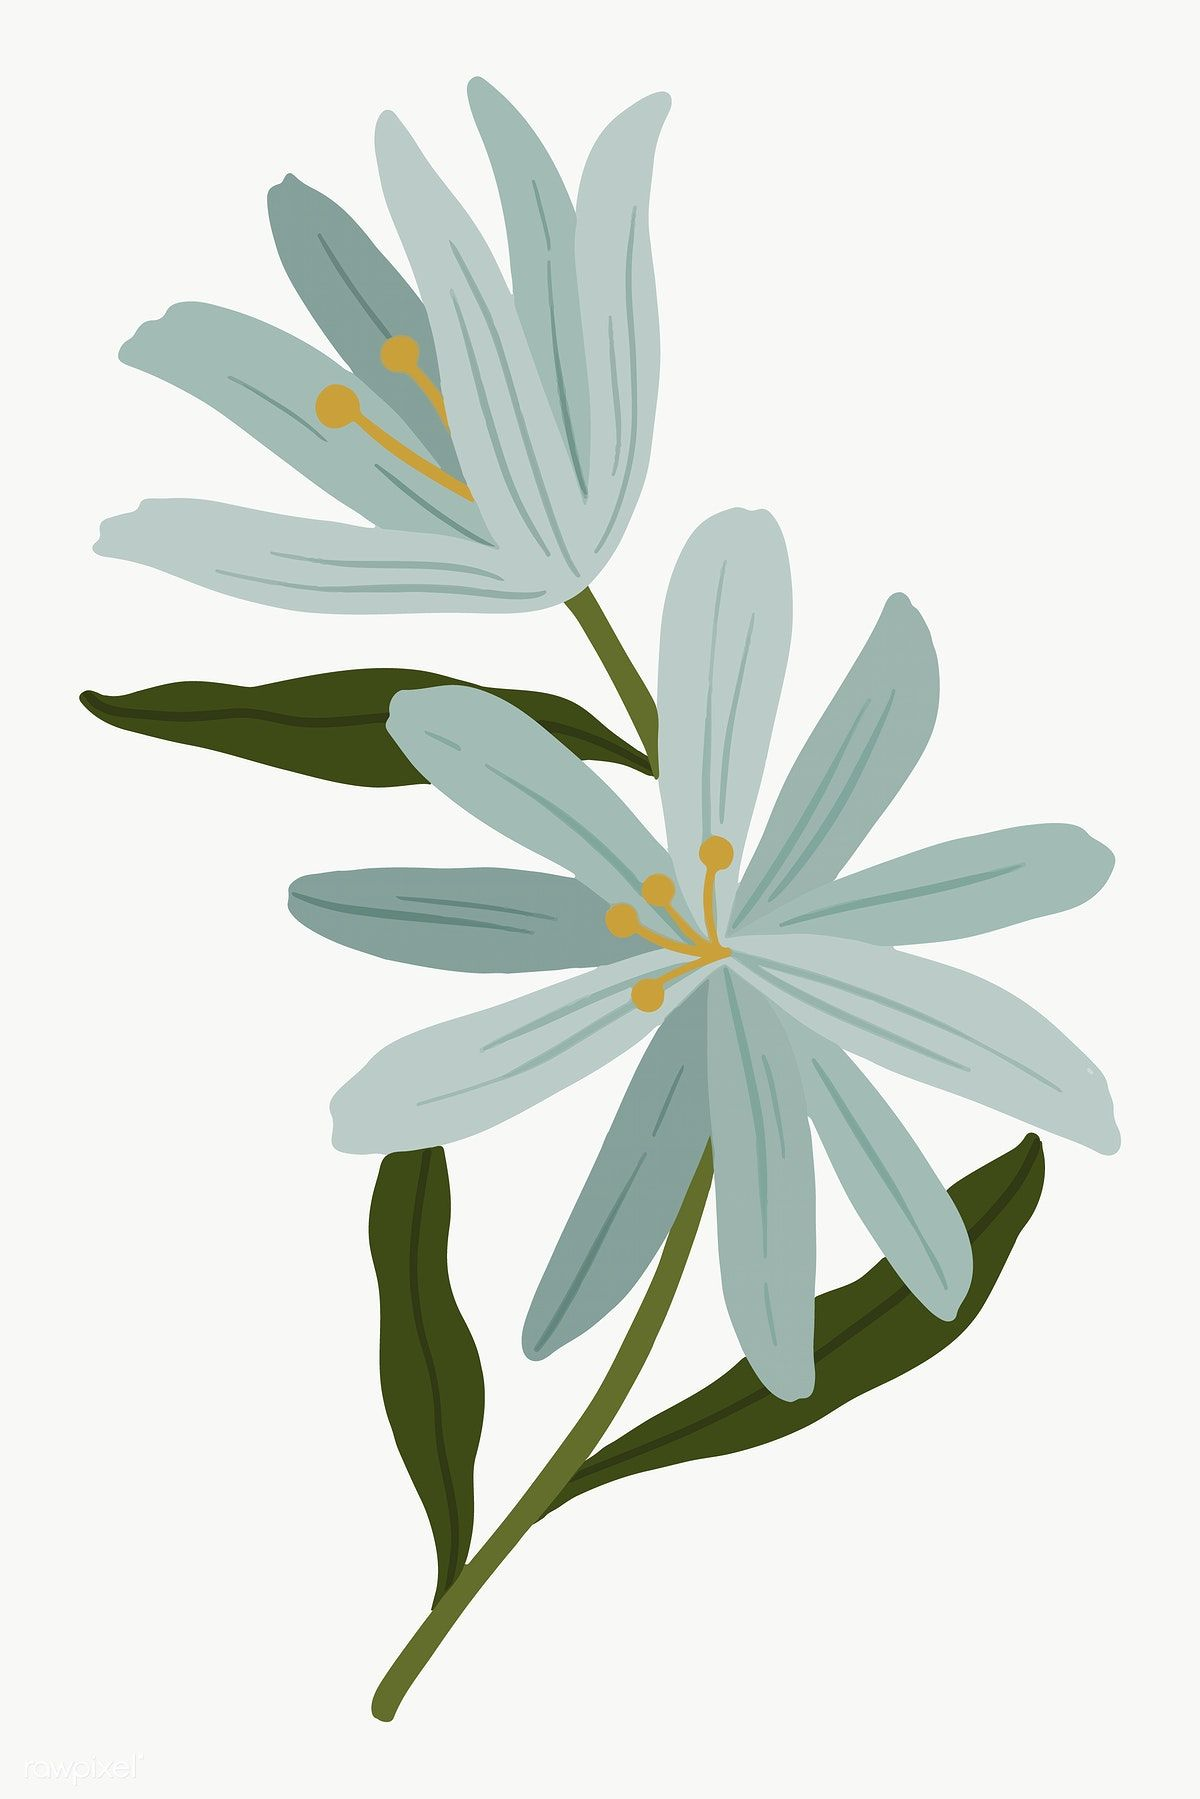 Blooming Blue Botanical Transparent Png Free Image By Rawpixel Com Noon Plant Illustration Flower Illustration Botanical Drawings